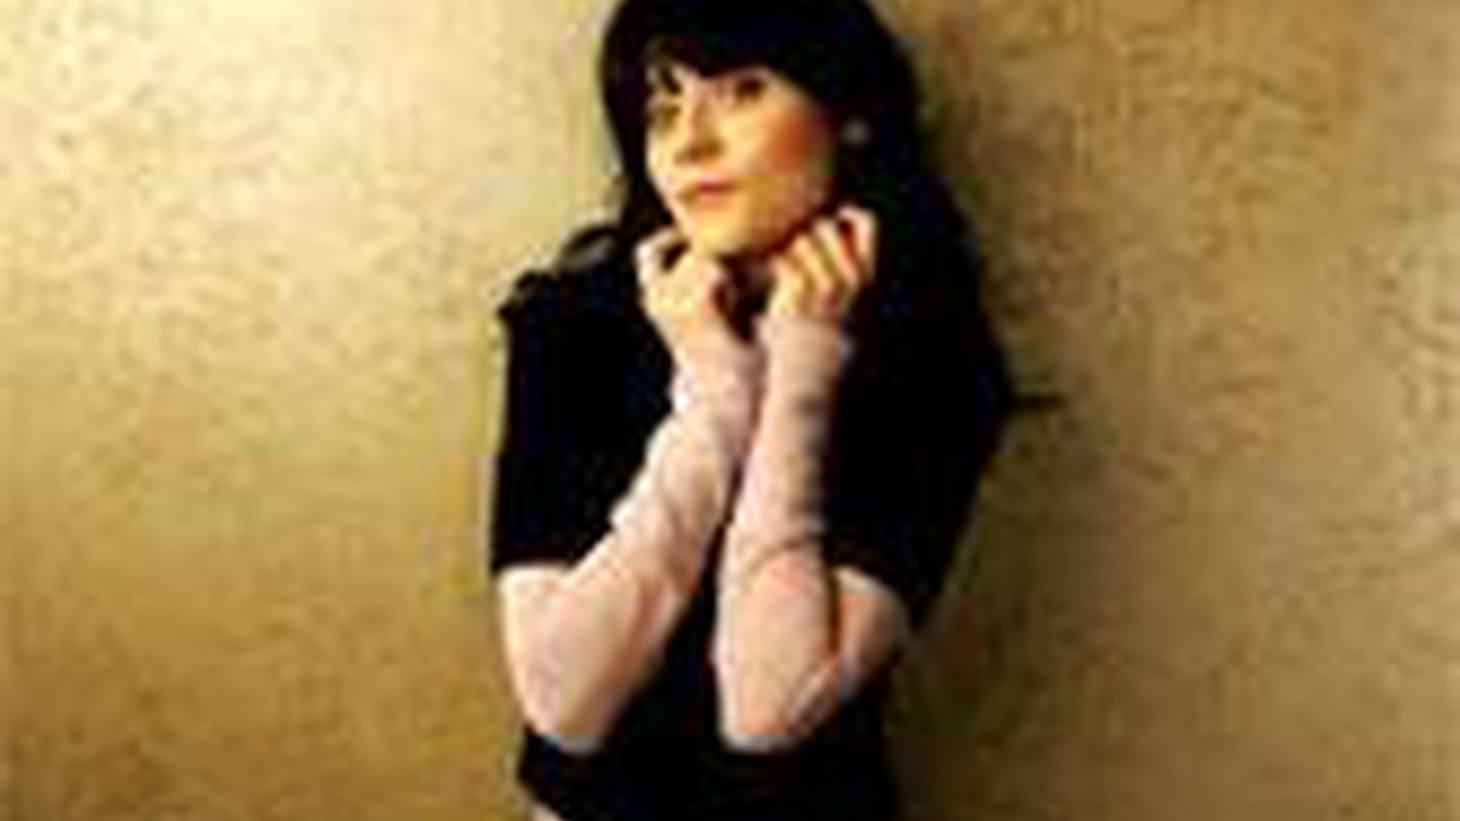 Actress and singer Zooey Deschanel(Almost Famous, Elf, All Real girls) will be stopping by Gary's show at 10pm this Sunday.